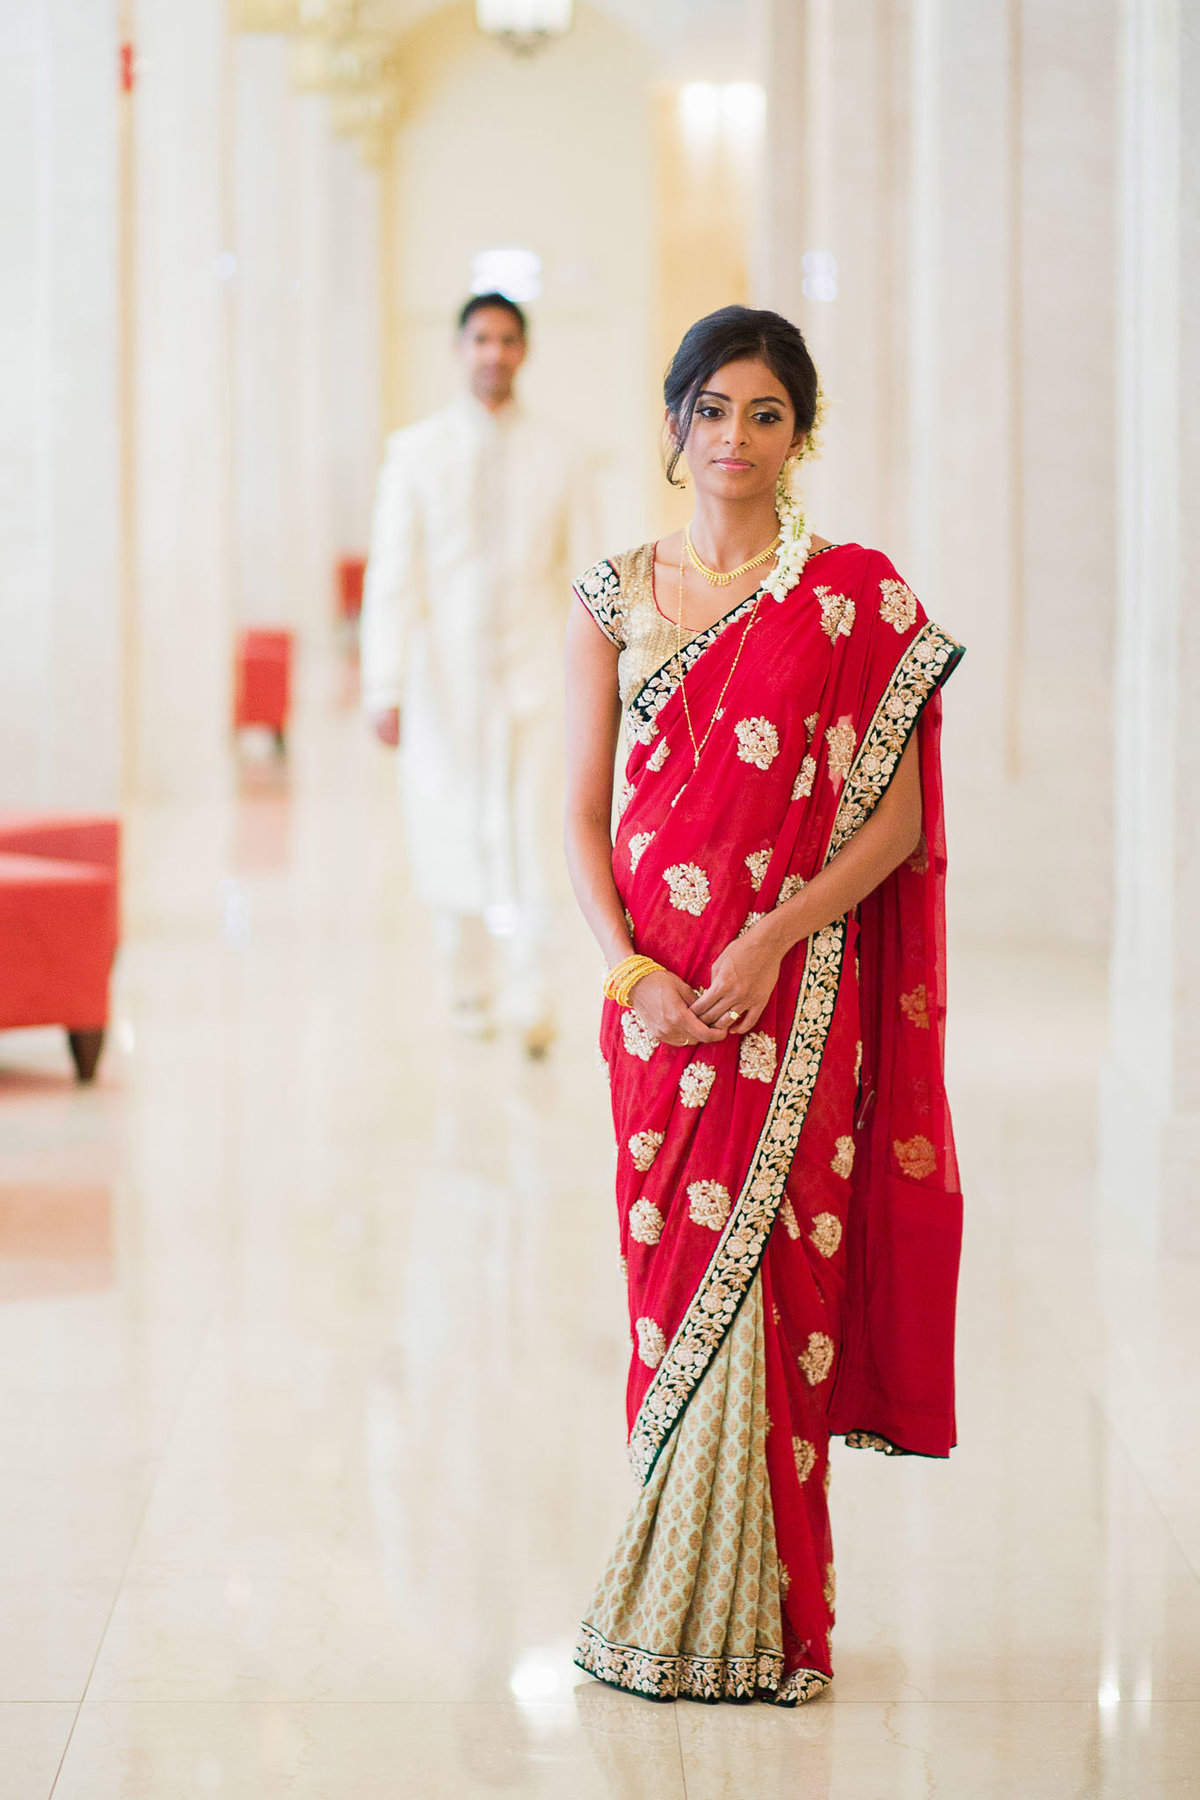 Harold-Washington-Library-South-Asian-Wedding-030